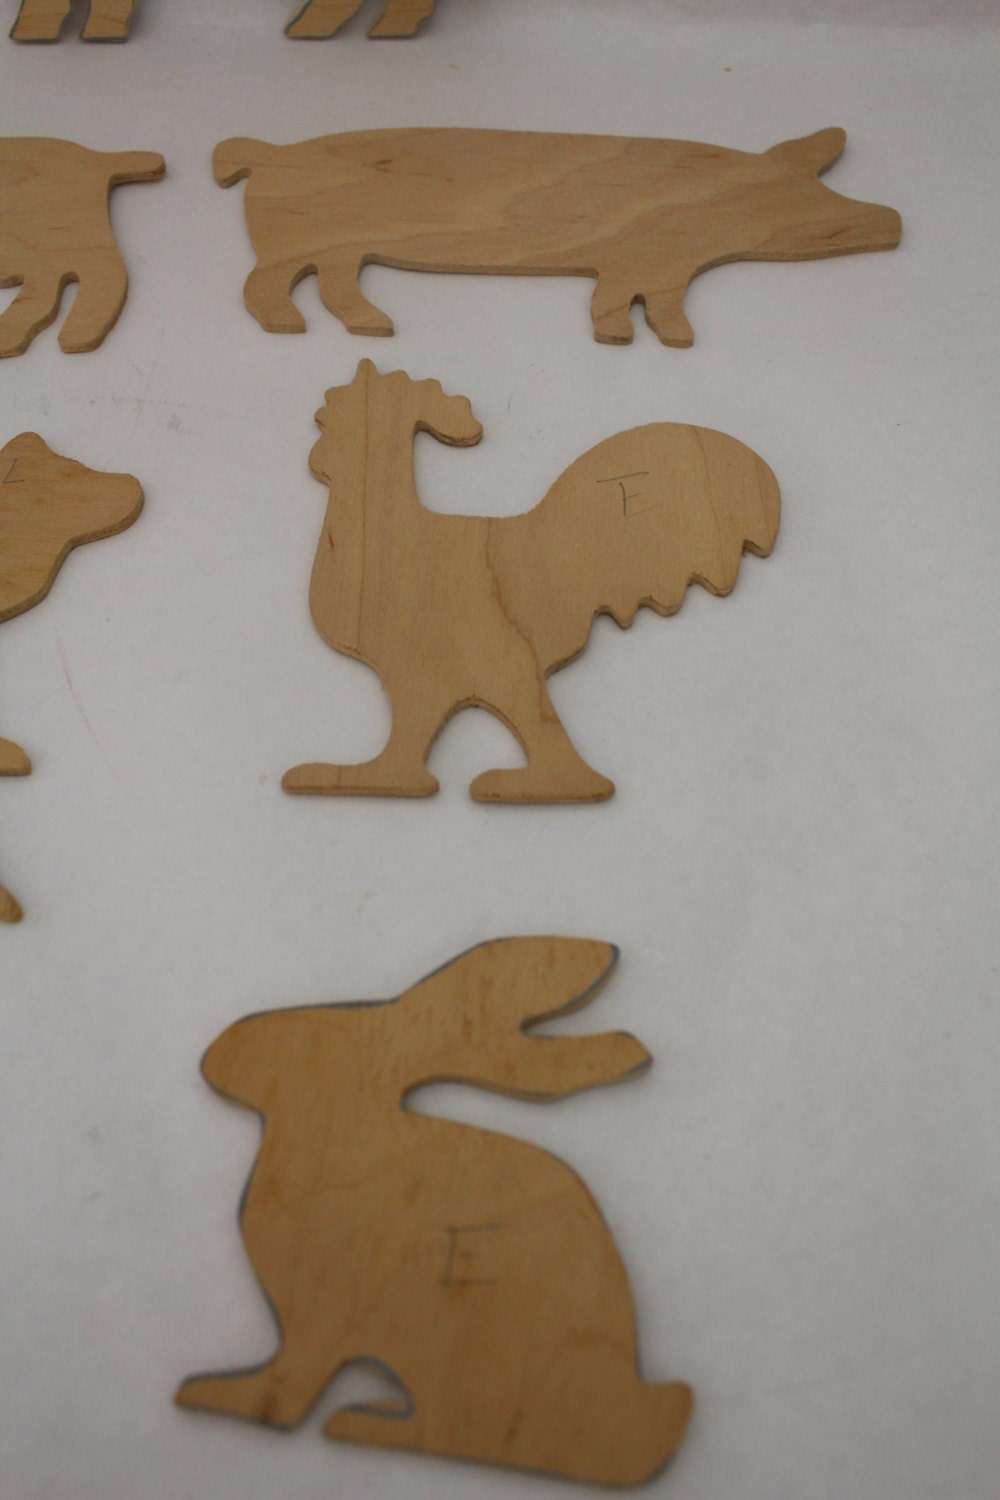 carved wood animal cut outs rare 70s large animal shapes